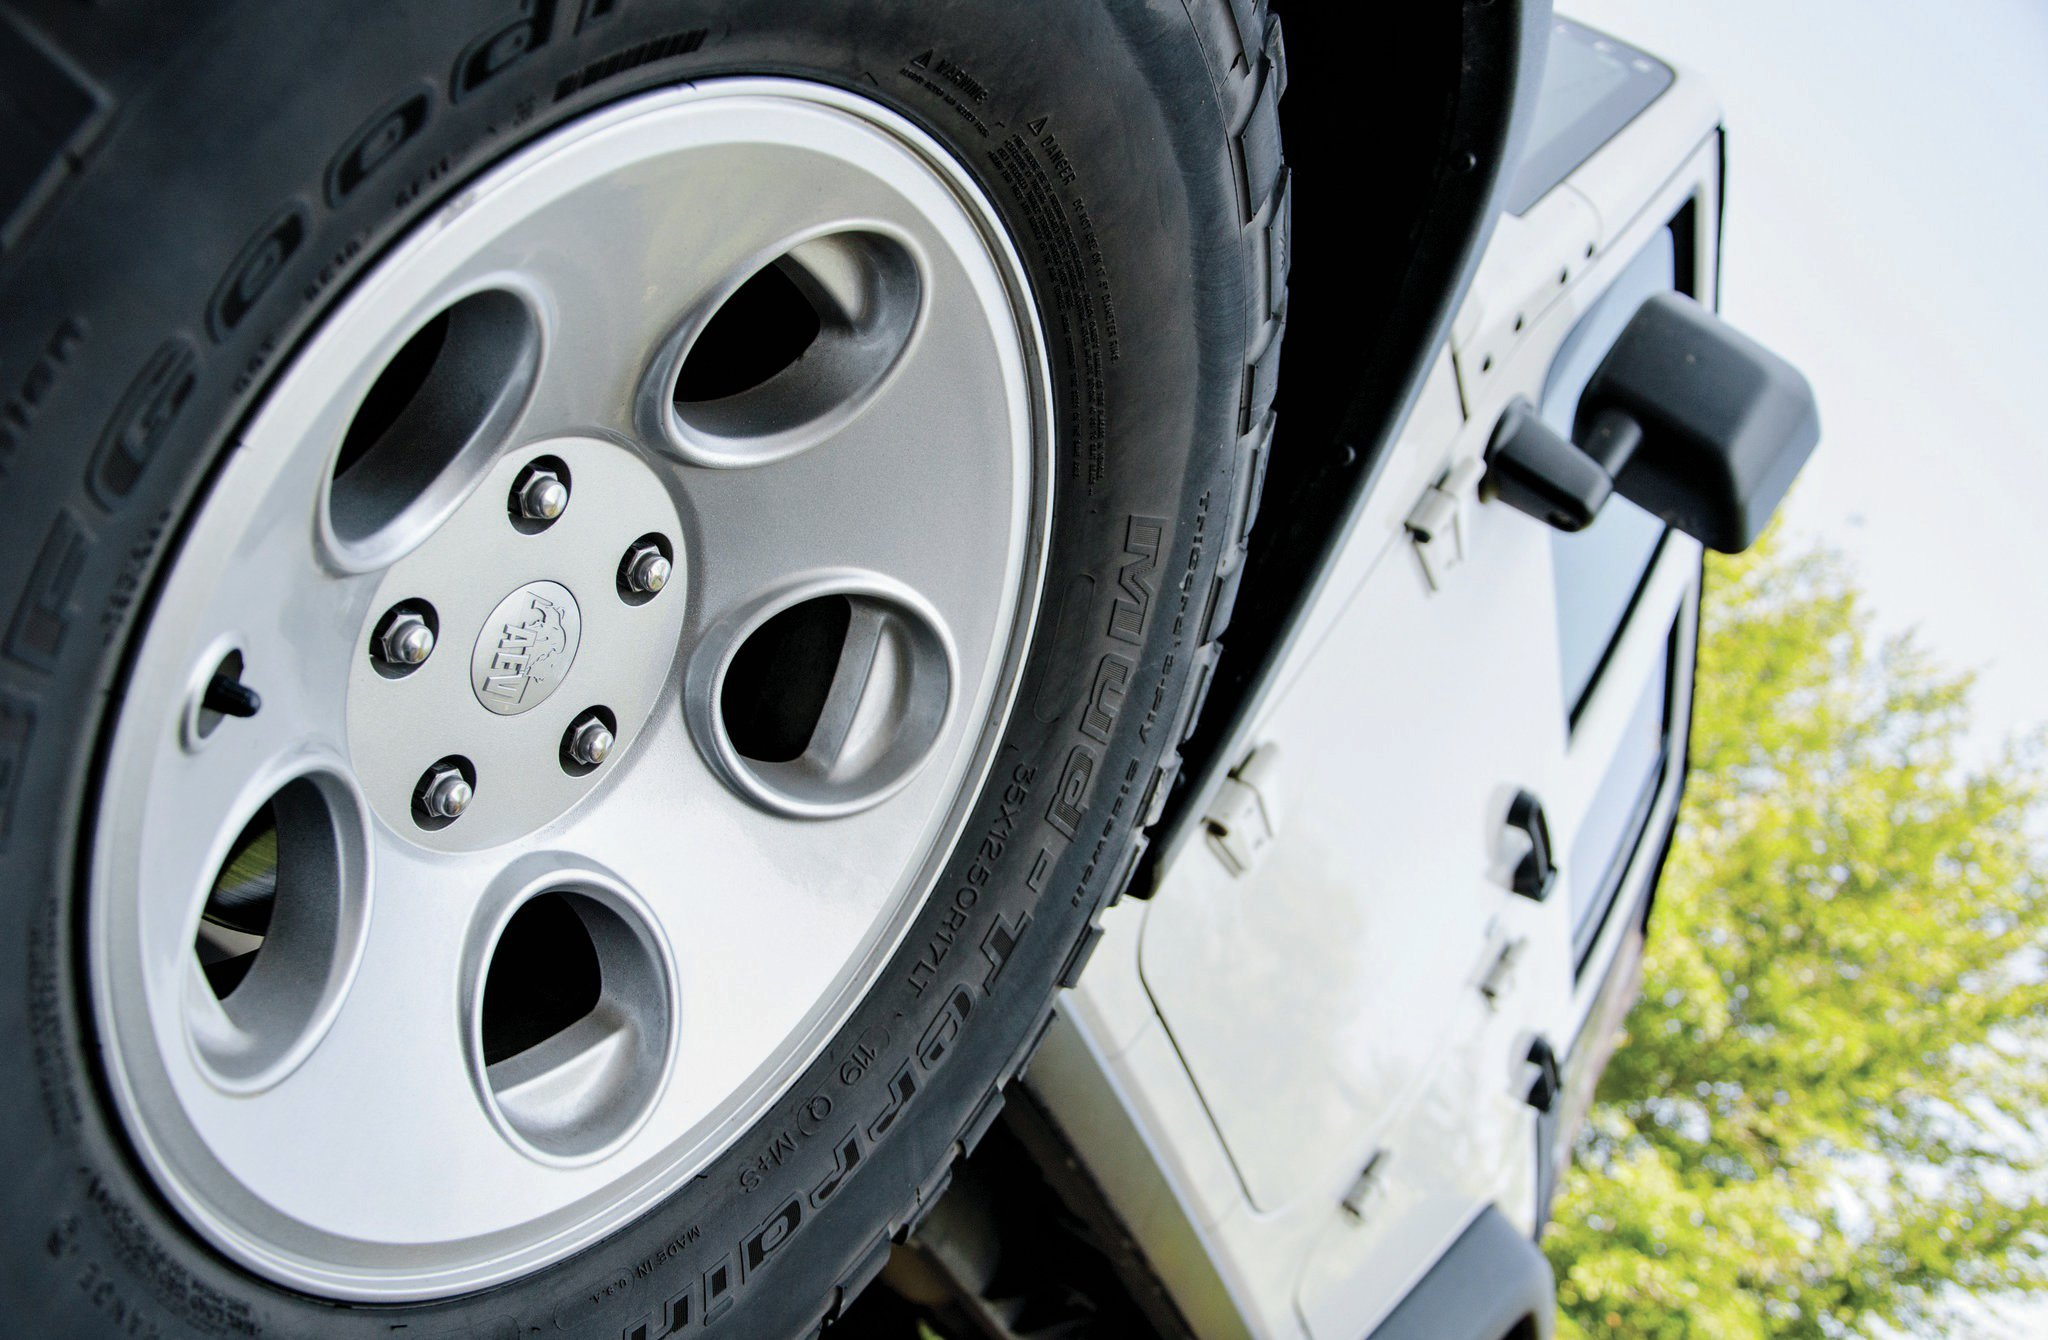 AEV has a line of cast-aluminum wheels with a clean, understated appearance that looks like a factory offering and a comparable weight to stock JK wheels. It designed the Savegre wheel specifically for the JK Wrangler, with the optimal balance of tire clearance, scrub radius, and handling.